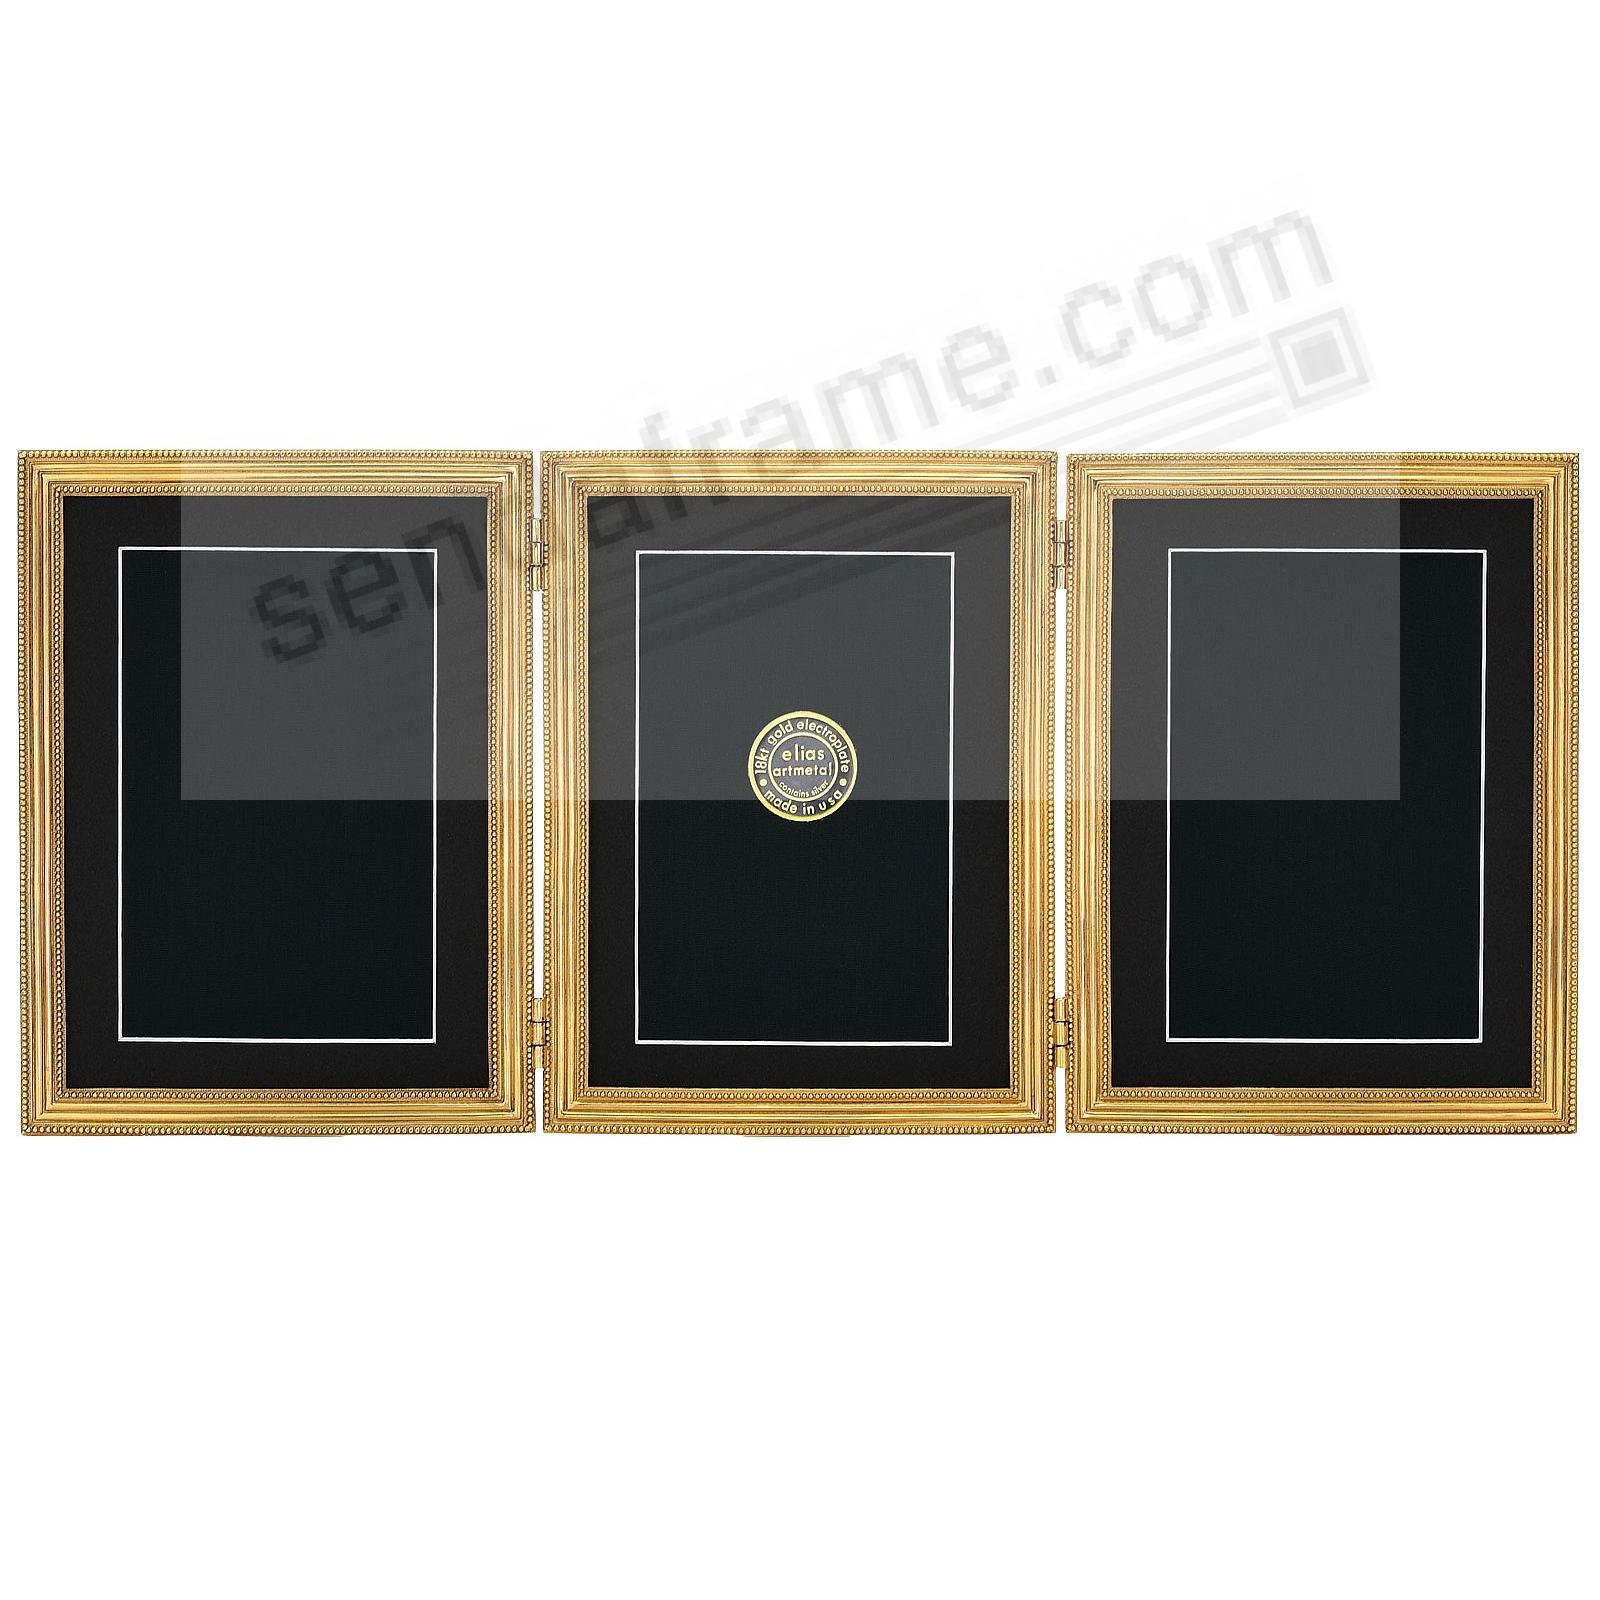 CLASSICO TRIPLE Hinged 2½x3½ frame in fine 18kt gold vermeil by Elias Artmetal®